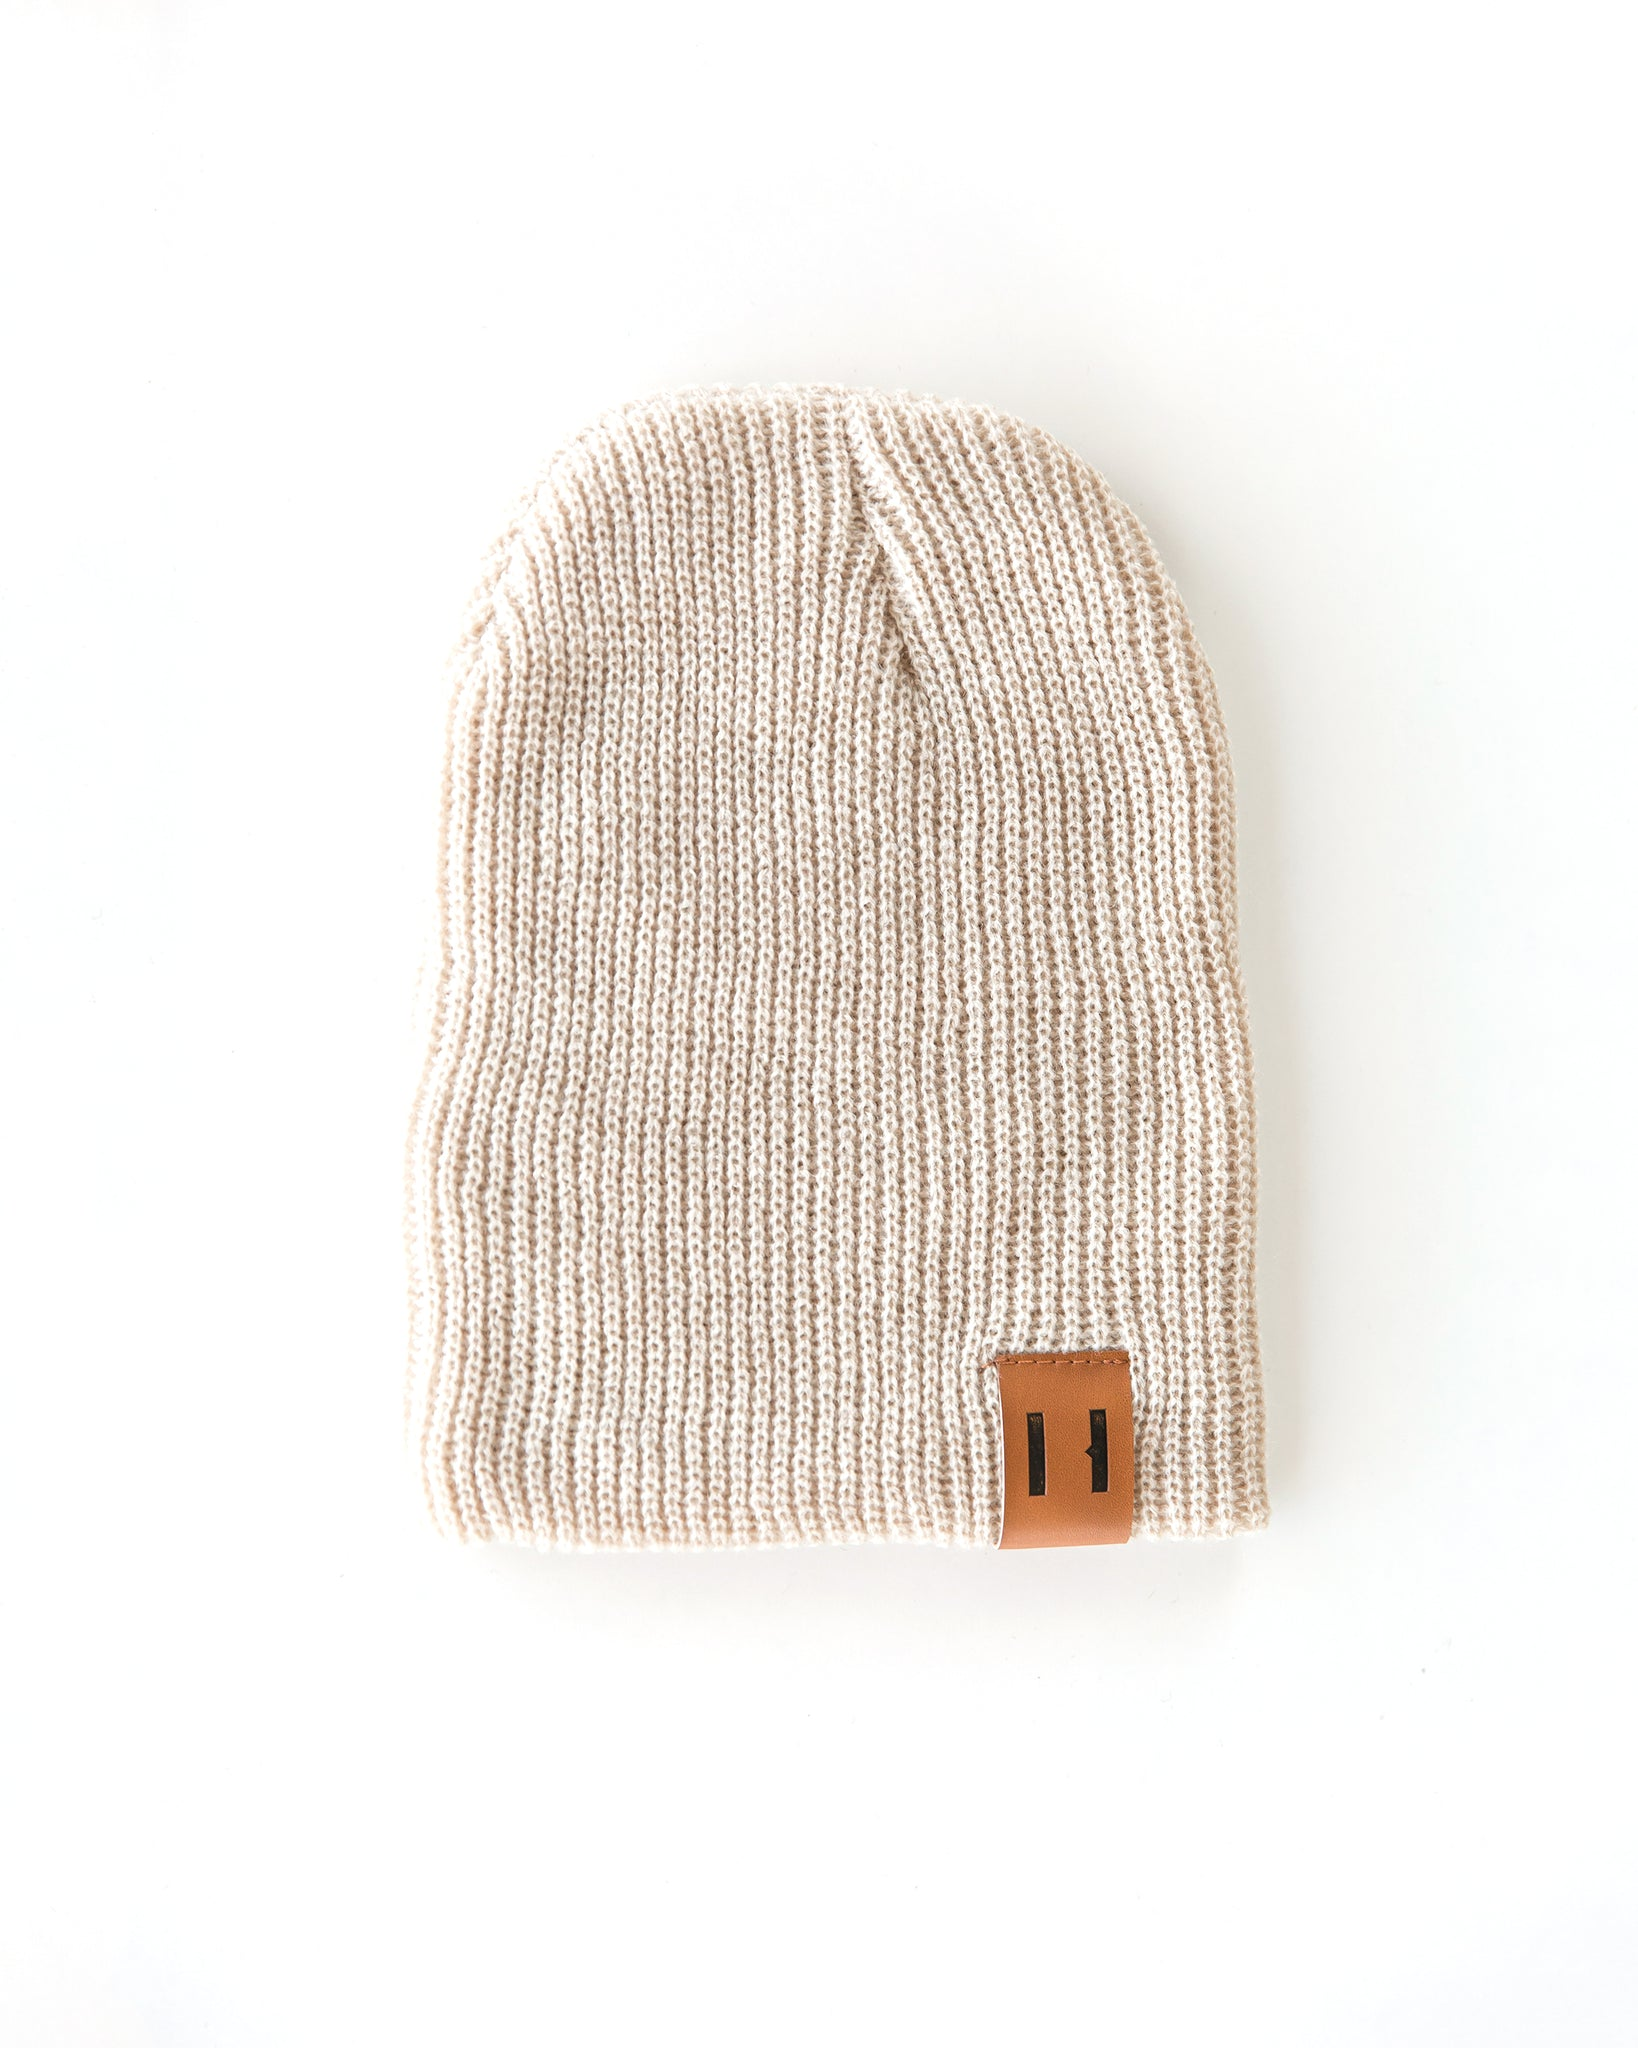 Daddy & Me Dude Beanie in Oatmeal - Reverie Threads